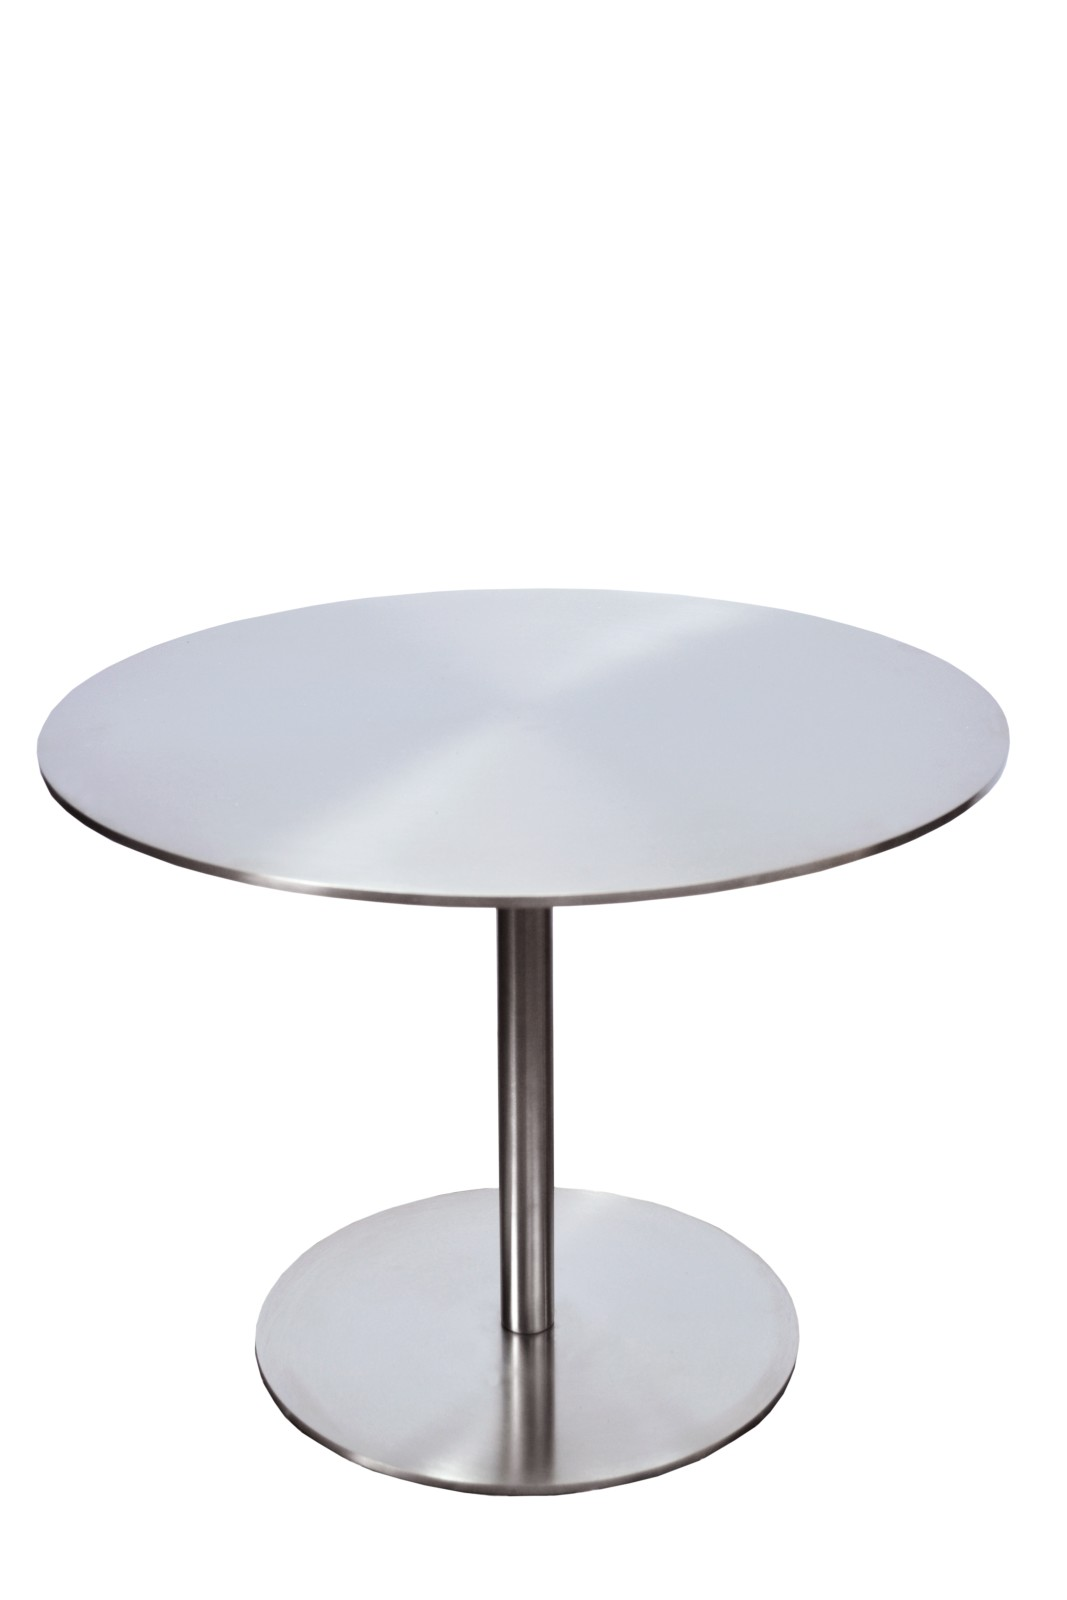 Ester Side Table Stainless Steel, Low